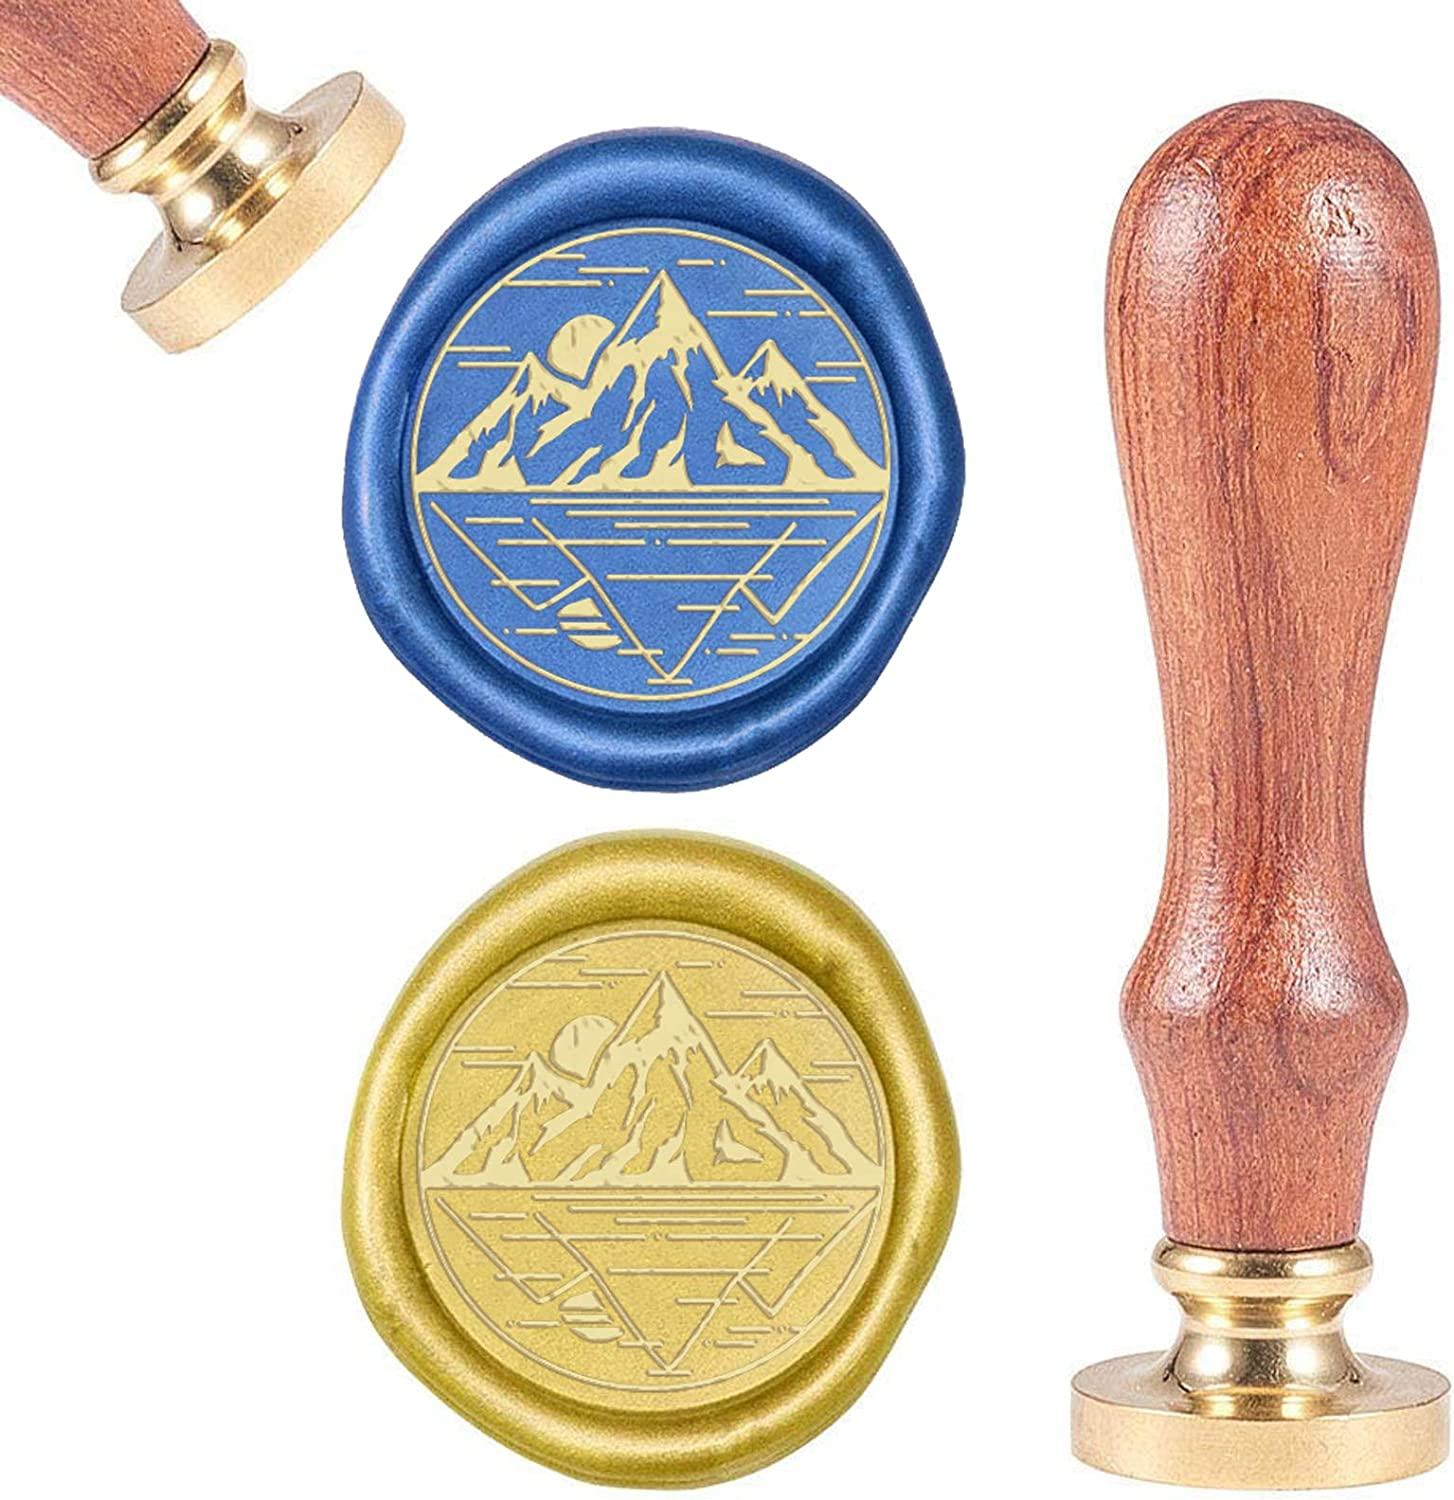 Vintage Sealing Wax Stamps Retro Wood Stamp Wax Seal 25mm Removable Brass Seal Wood Handle for Envelopes Invitations Wedding Embellishment Bottle Decoration CRASPIRE Wax Seal Stamp Forest